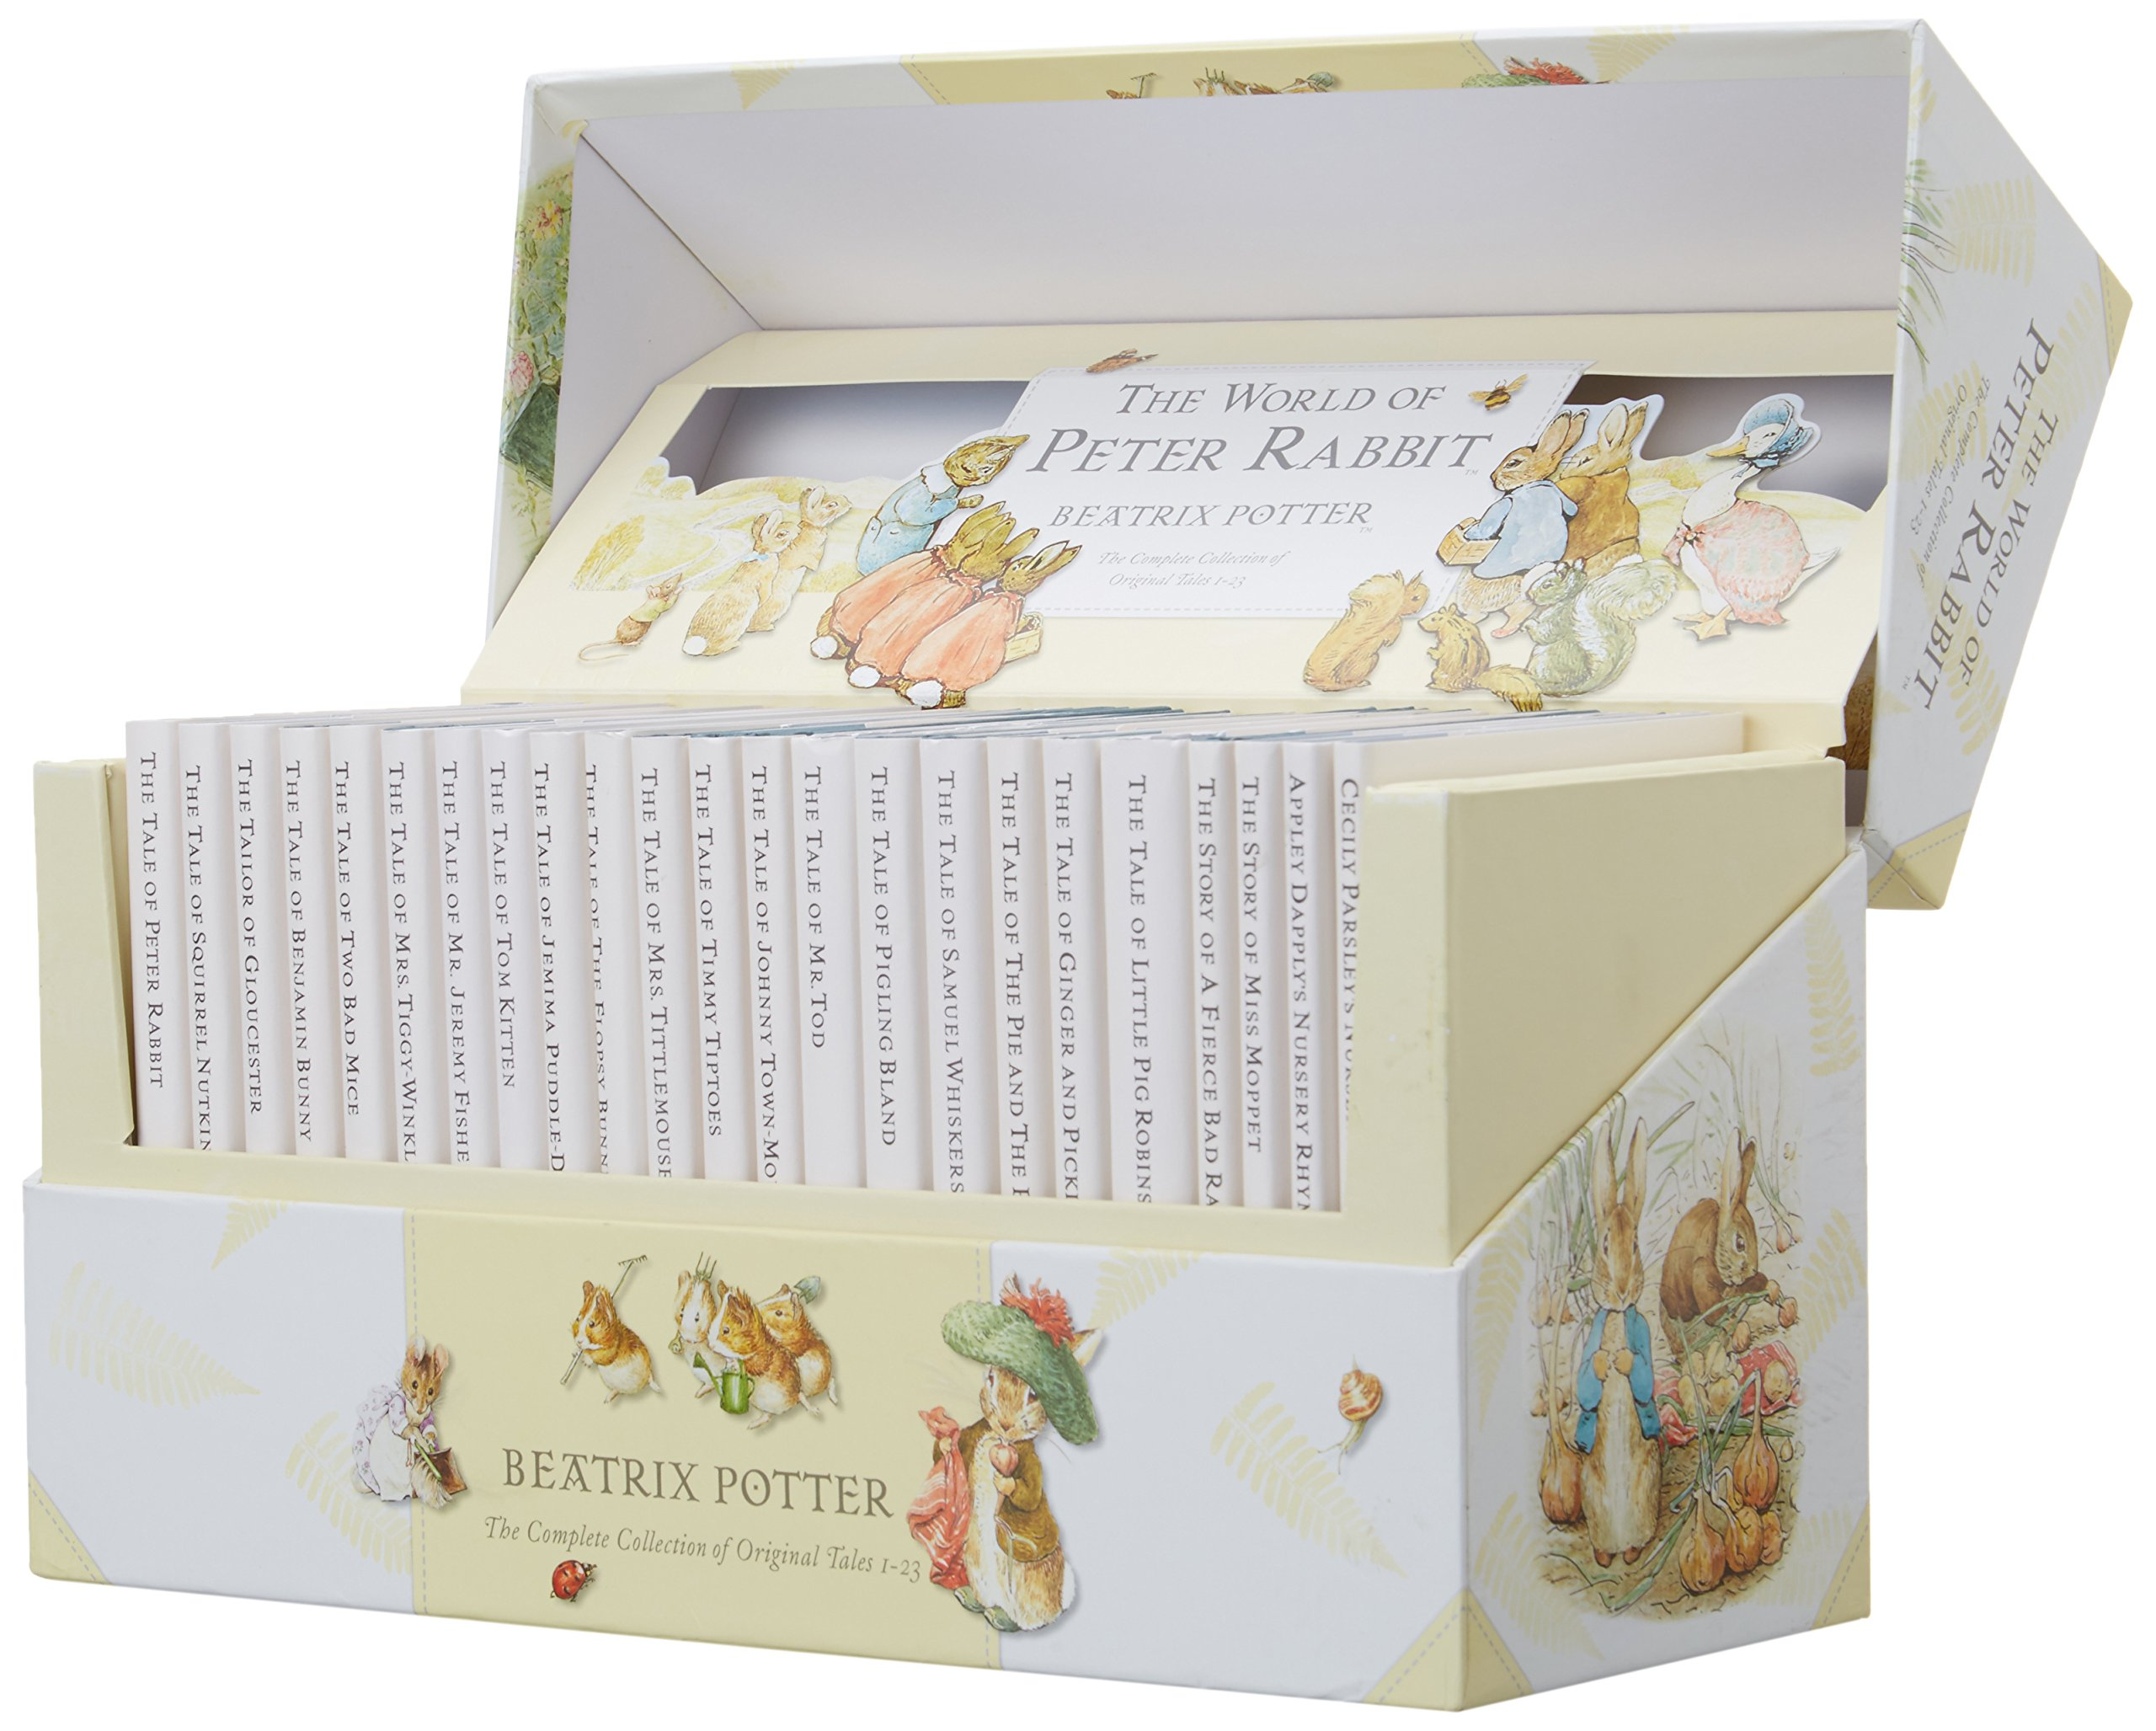 Image result for peter rabbit collection